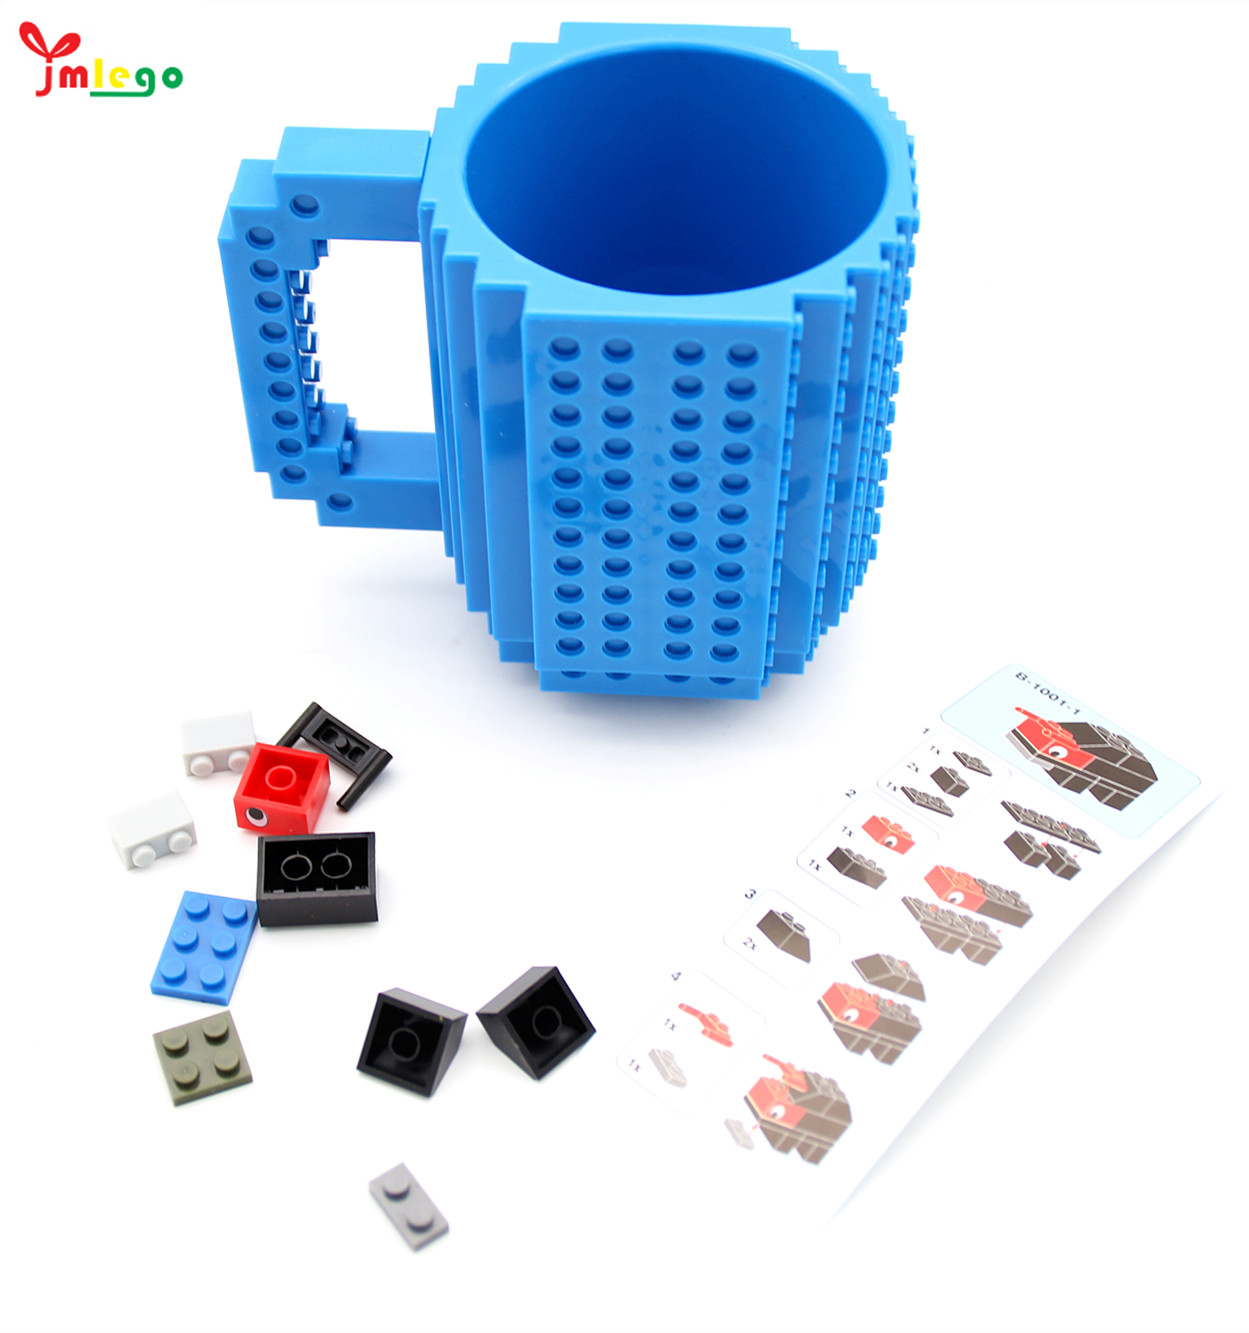 350Ml Build -On Bata Mug Tipe Blok Bangunan Beku Coffee Cup Diy Blok Puzzle Plastik Perjalanan Kopi Mug